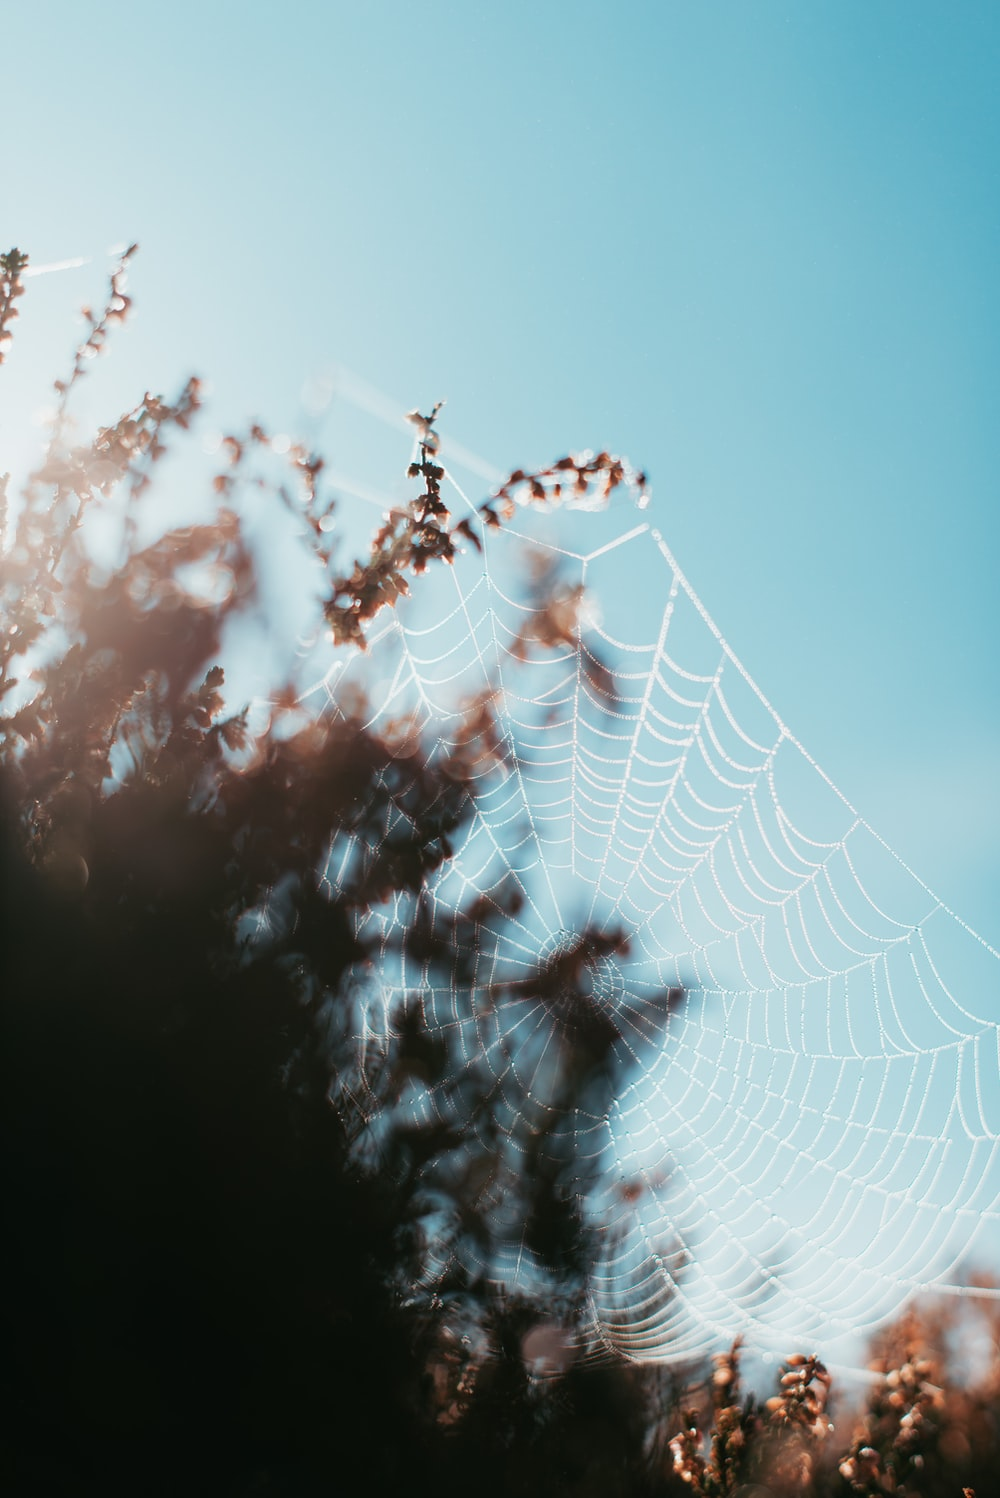 spider web on brown and white clouds during daytime